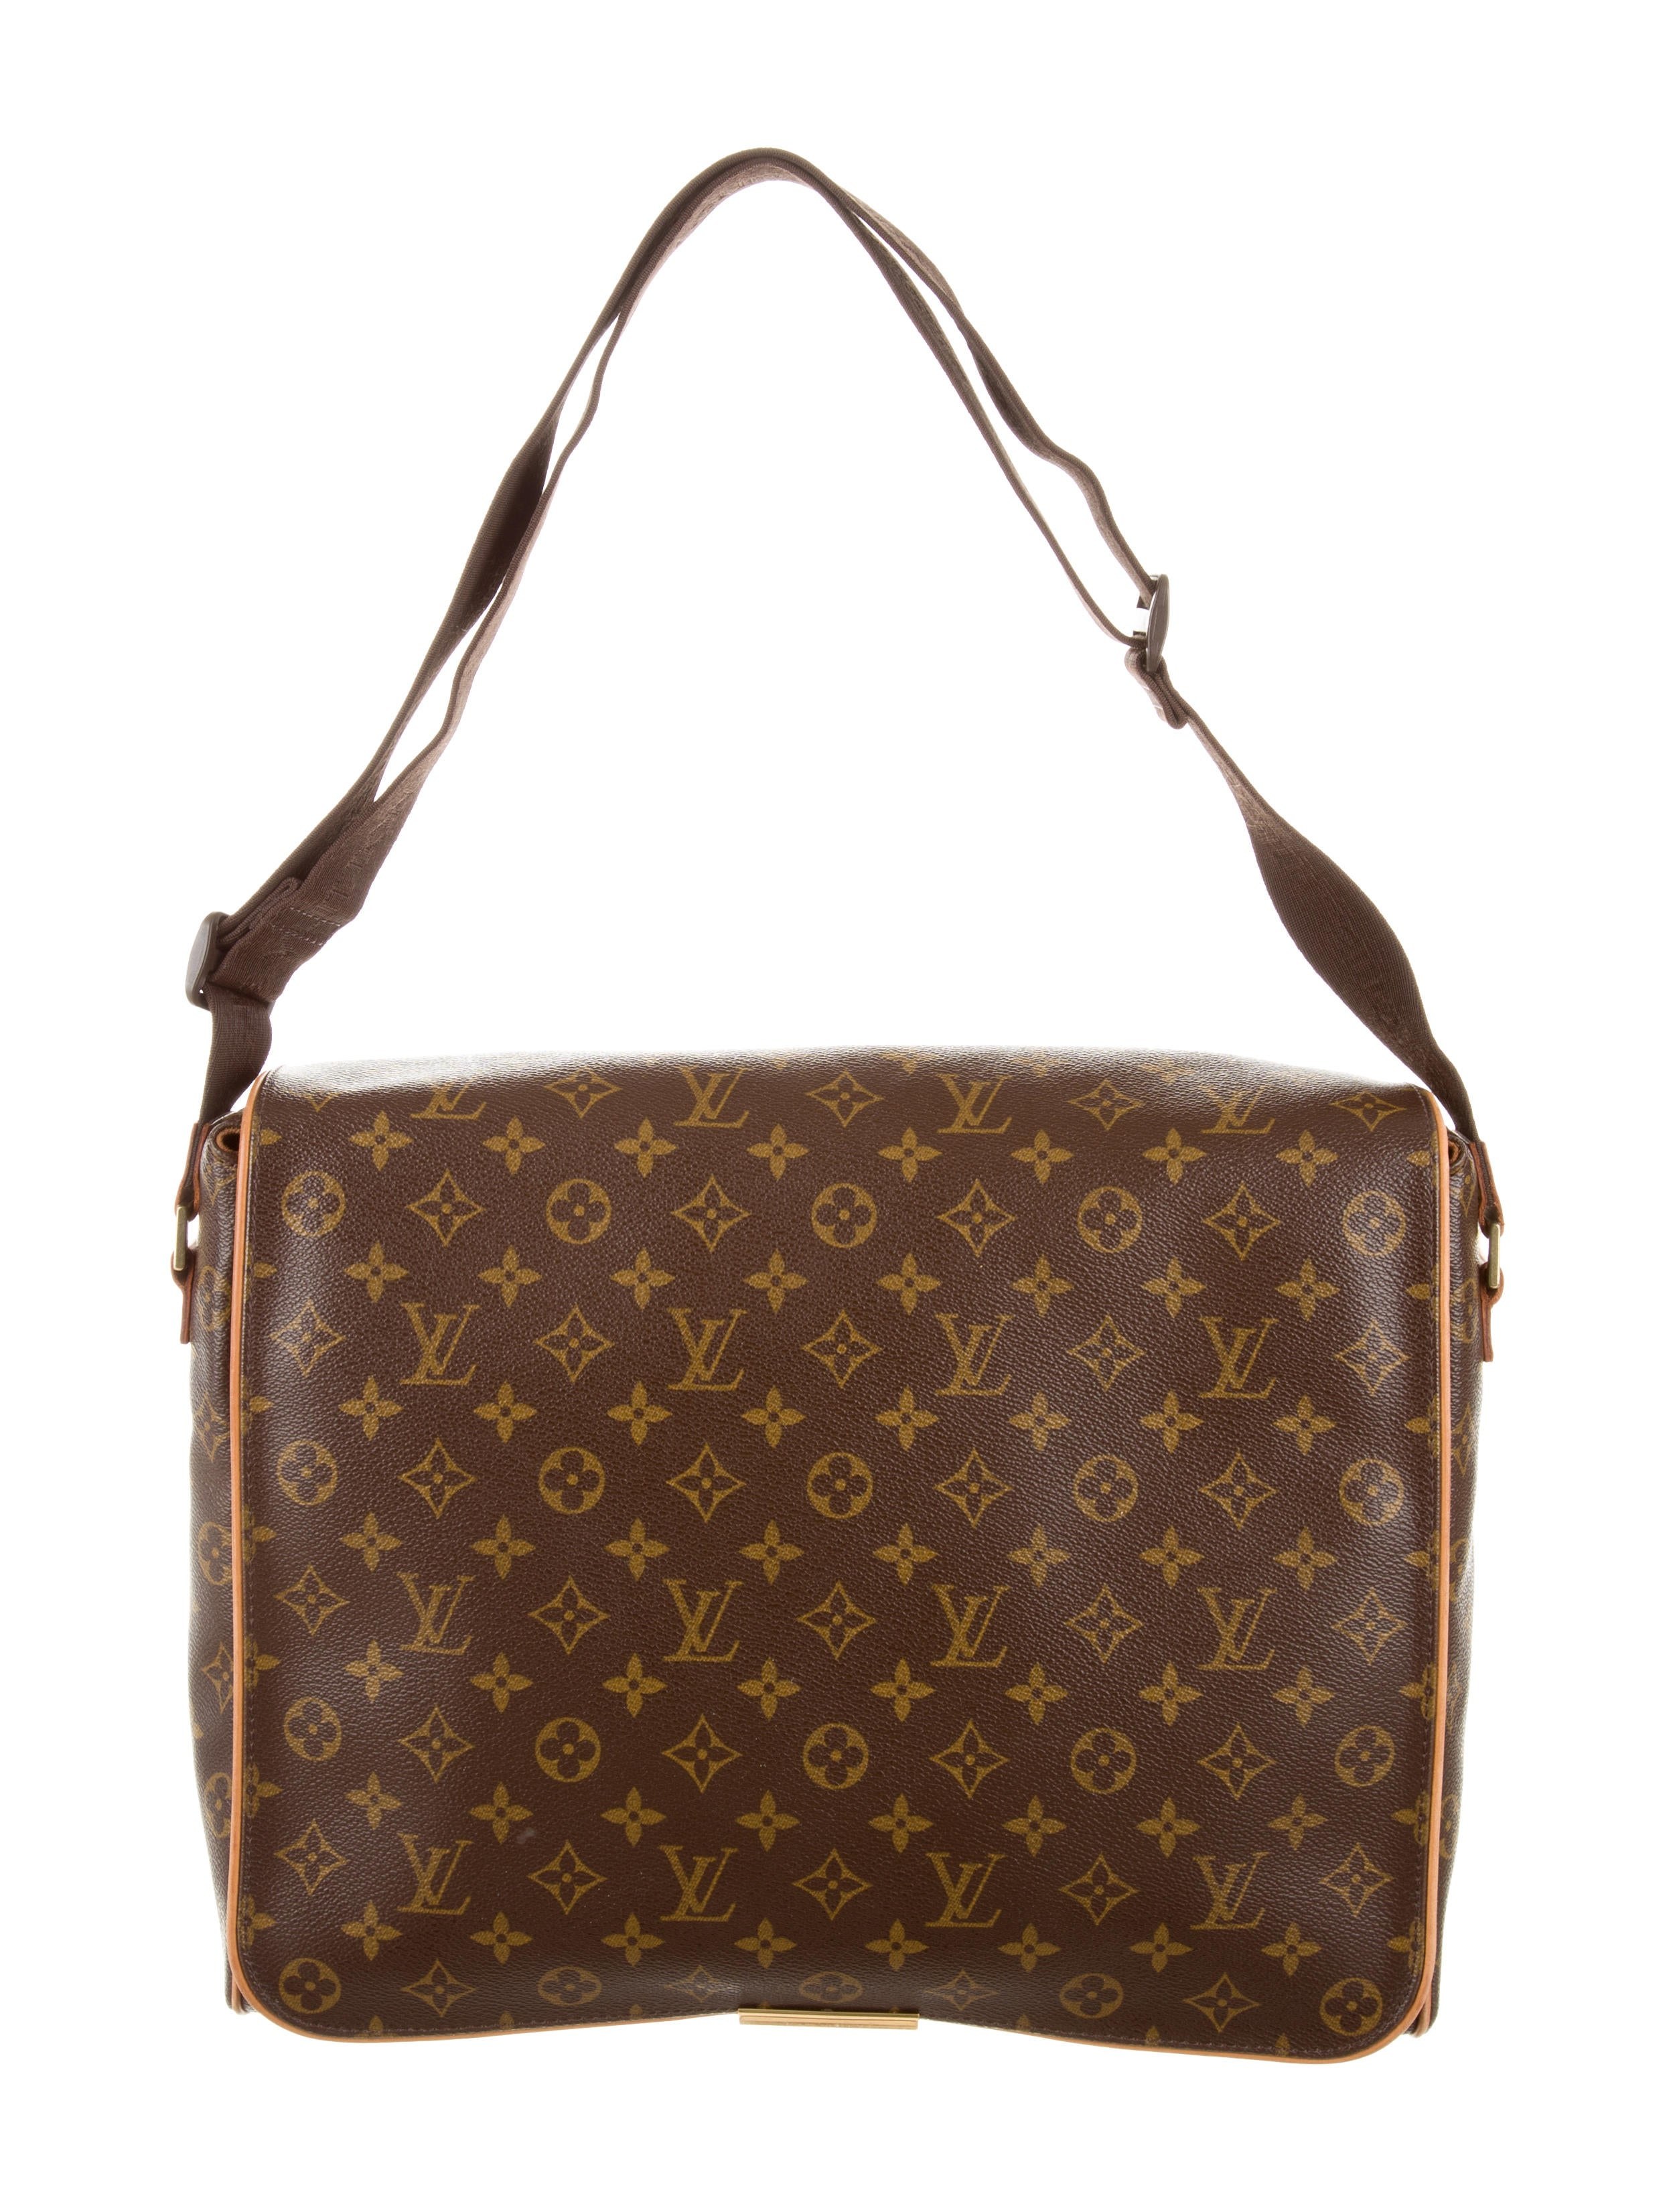 Excellent Brown And Tan Coated Canvas Messenger Style Bag With Brown Leather Trim And Gold-tone Hardware ...